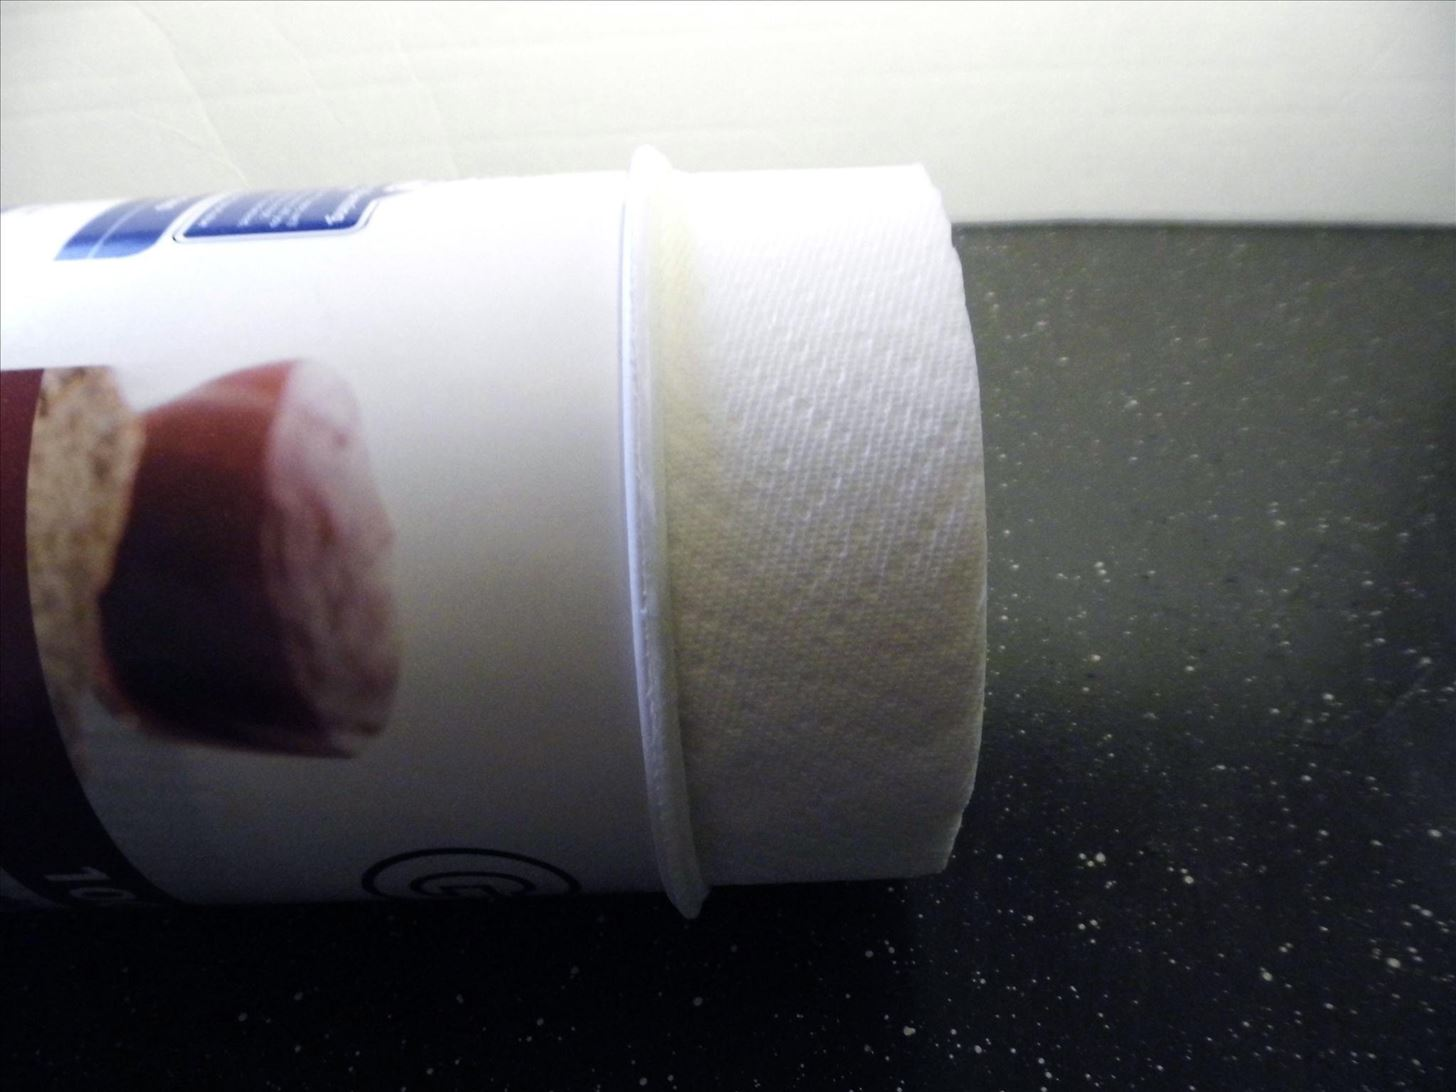 How to Mod an Oatmeal Container into a Paper Towel Dispenser